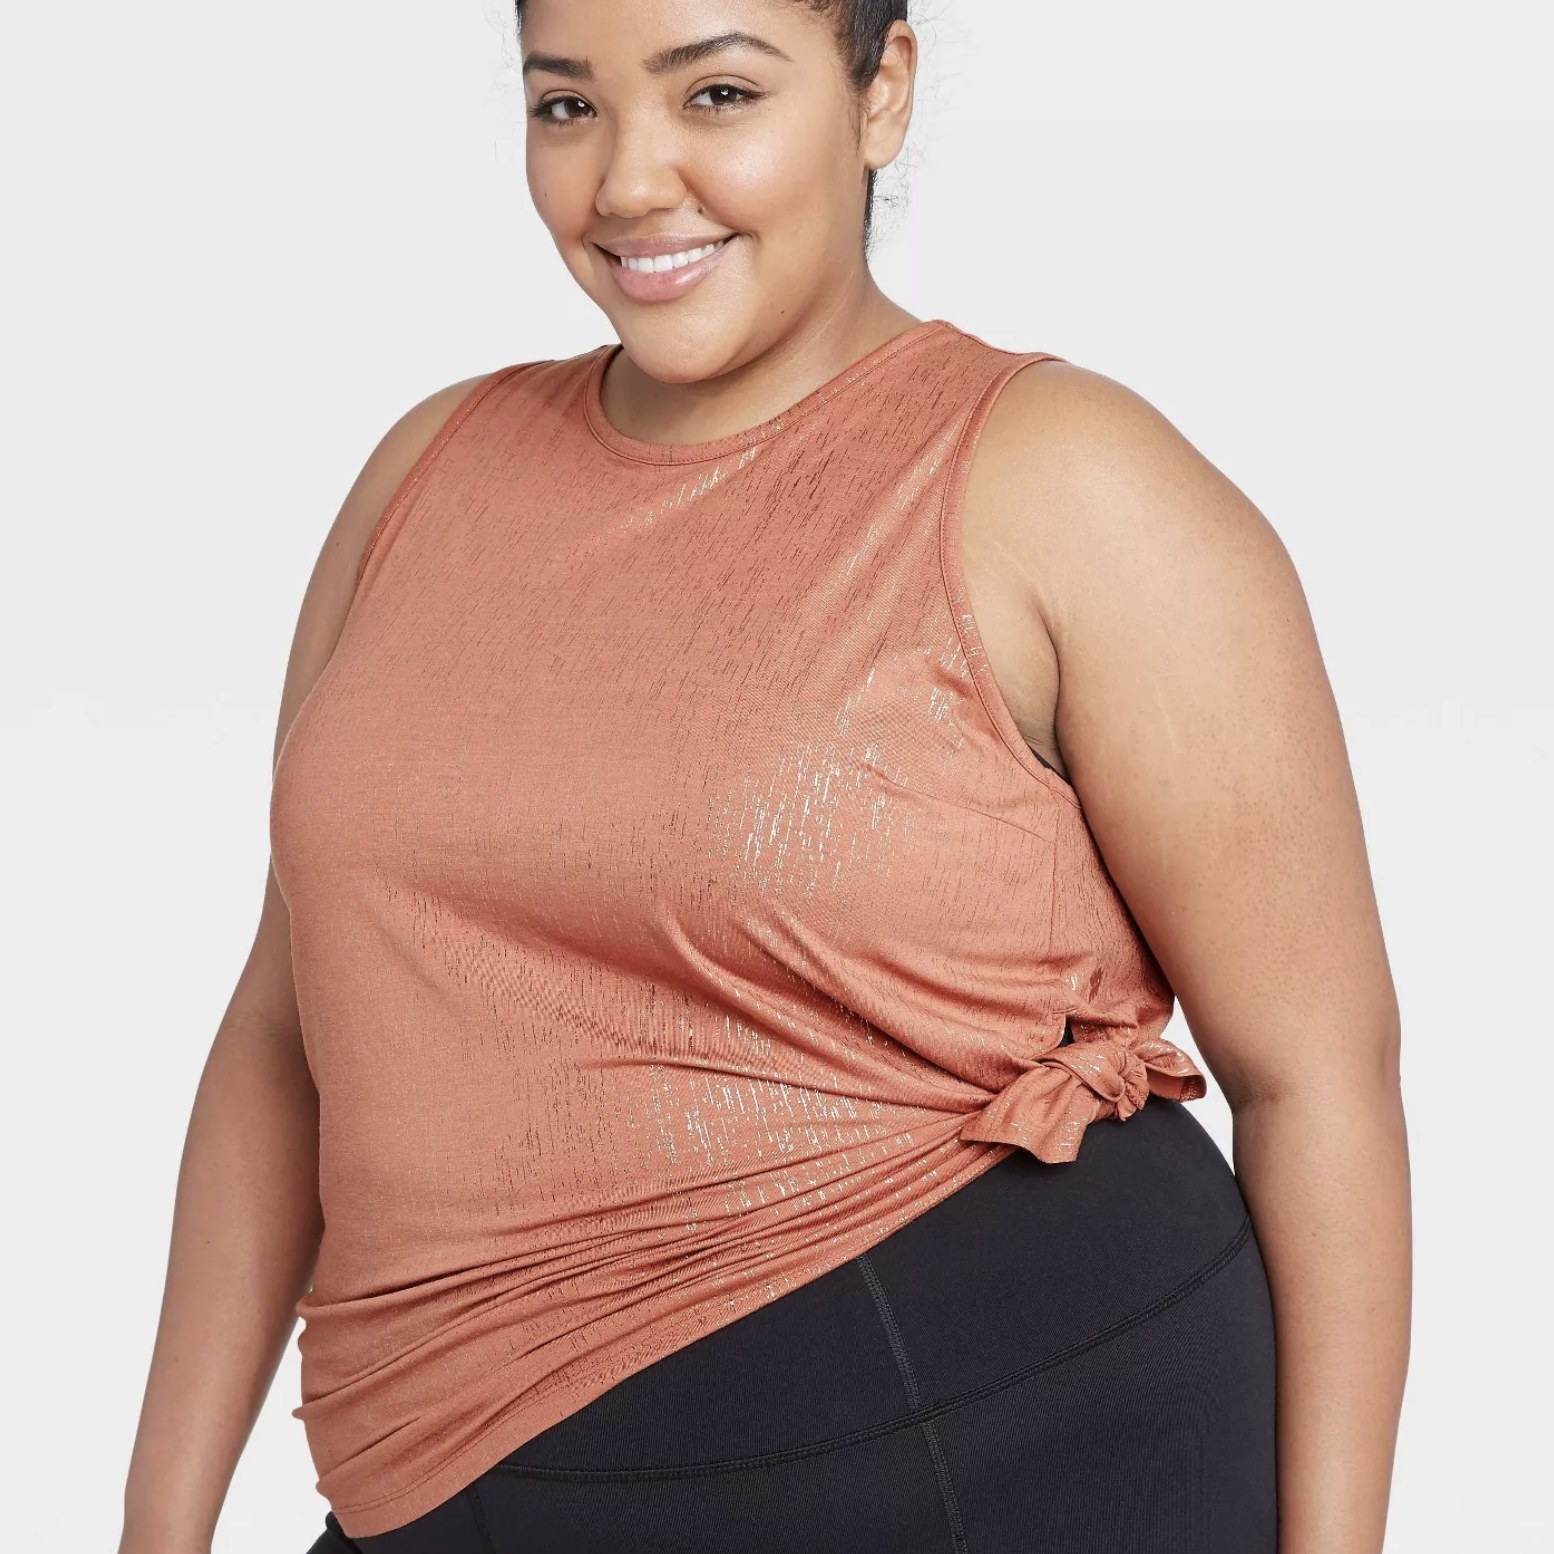 Model is wearing an orange textured tank with a side-tie detail